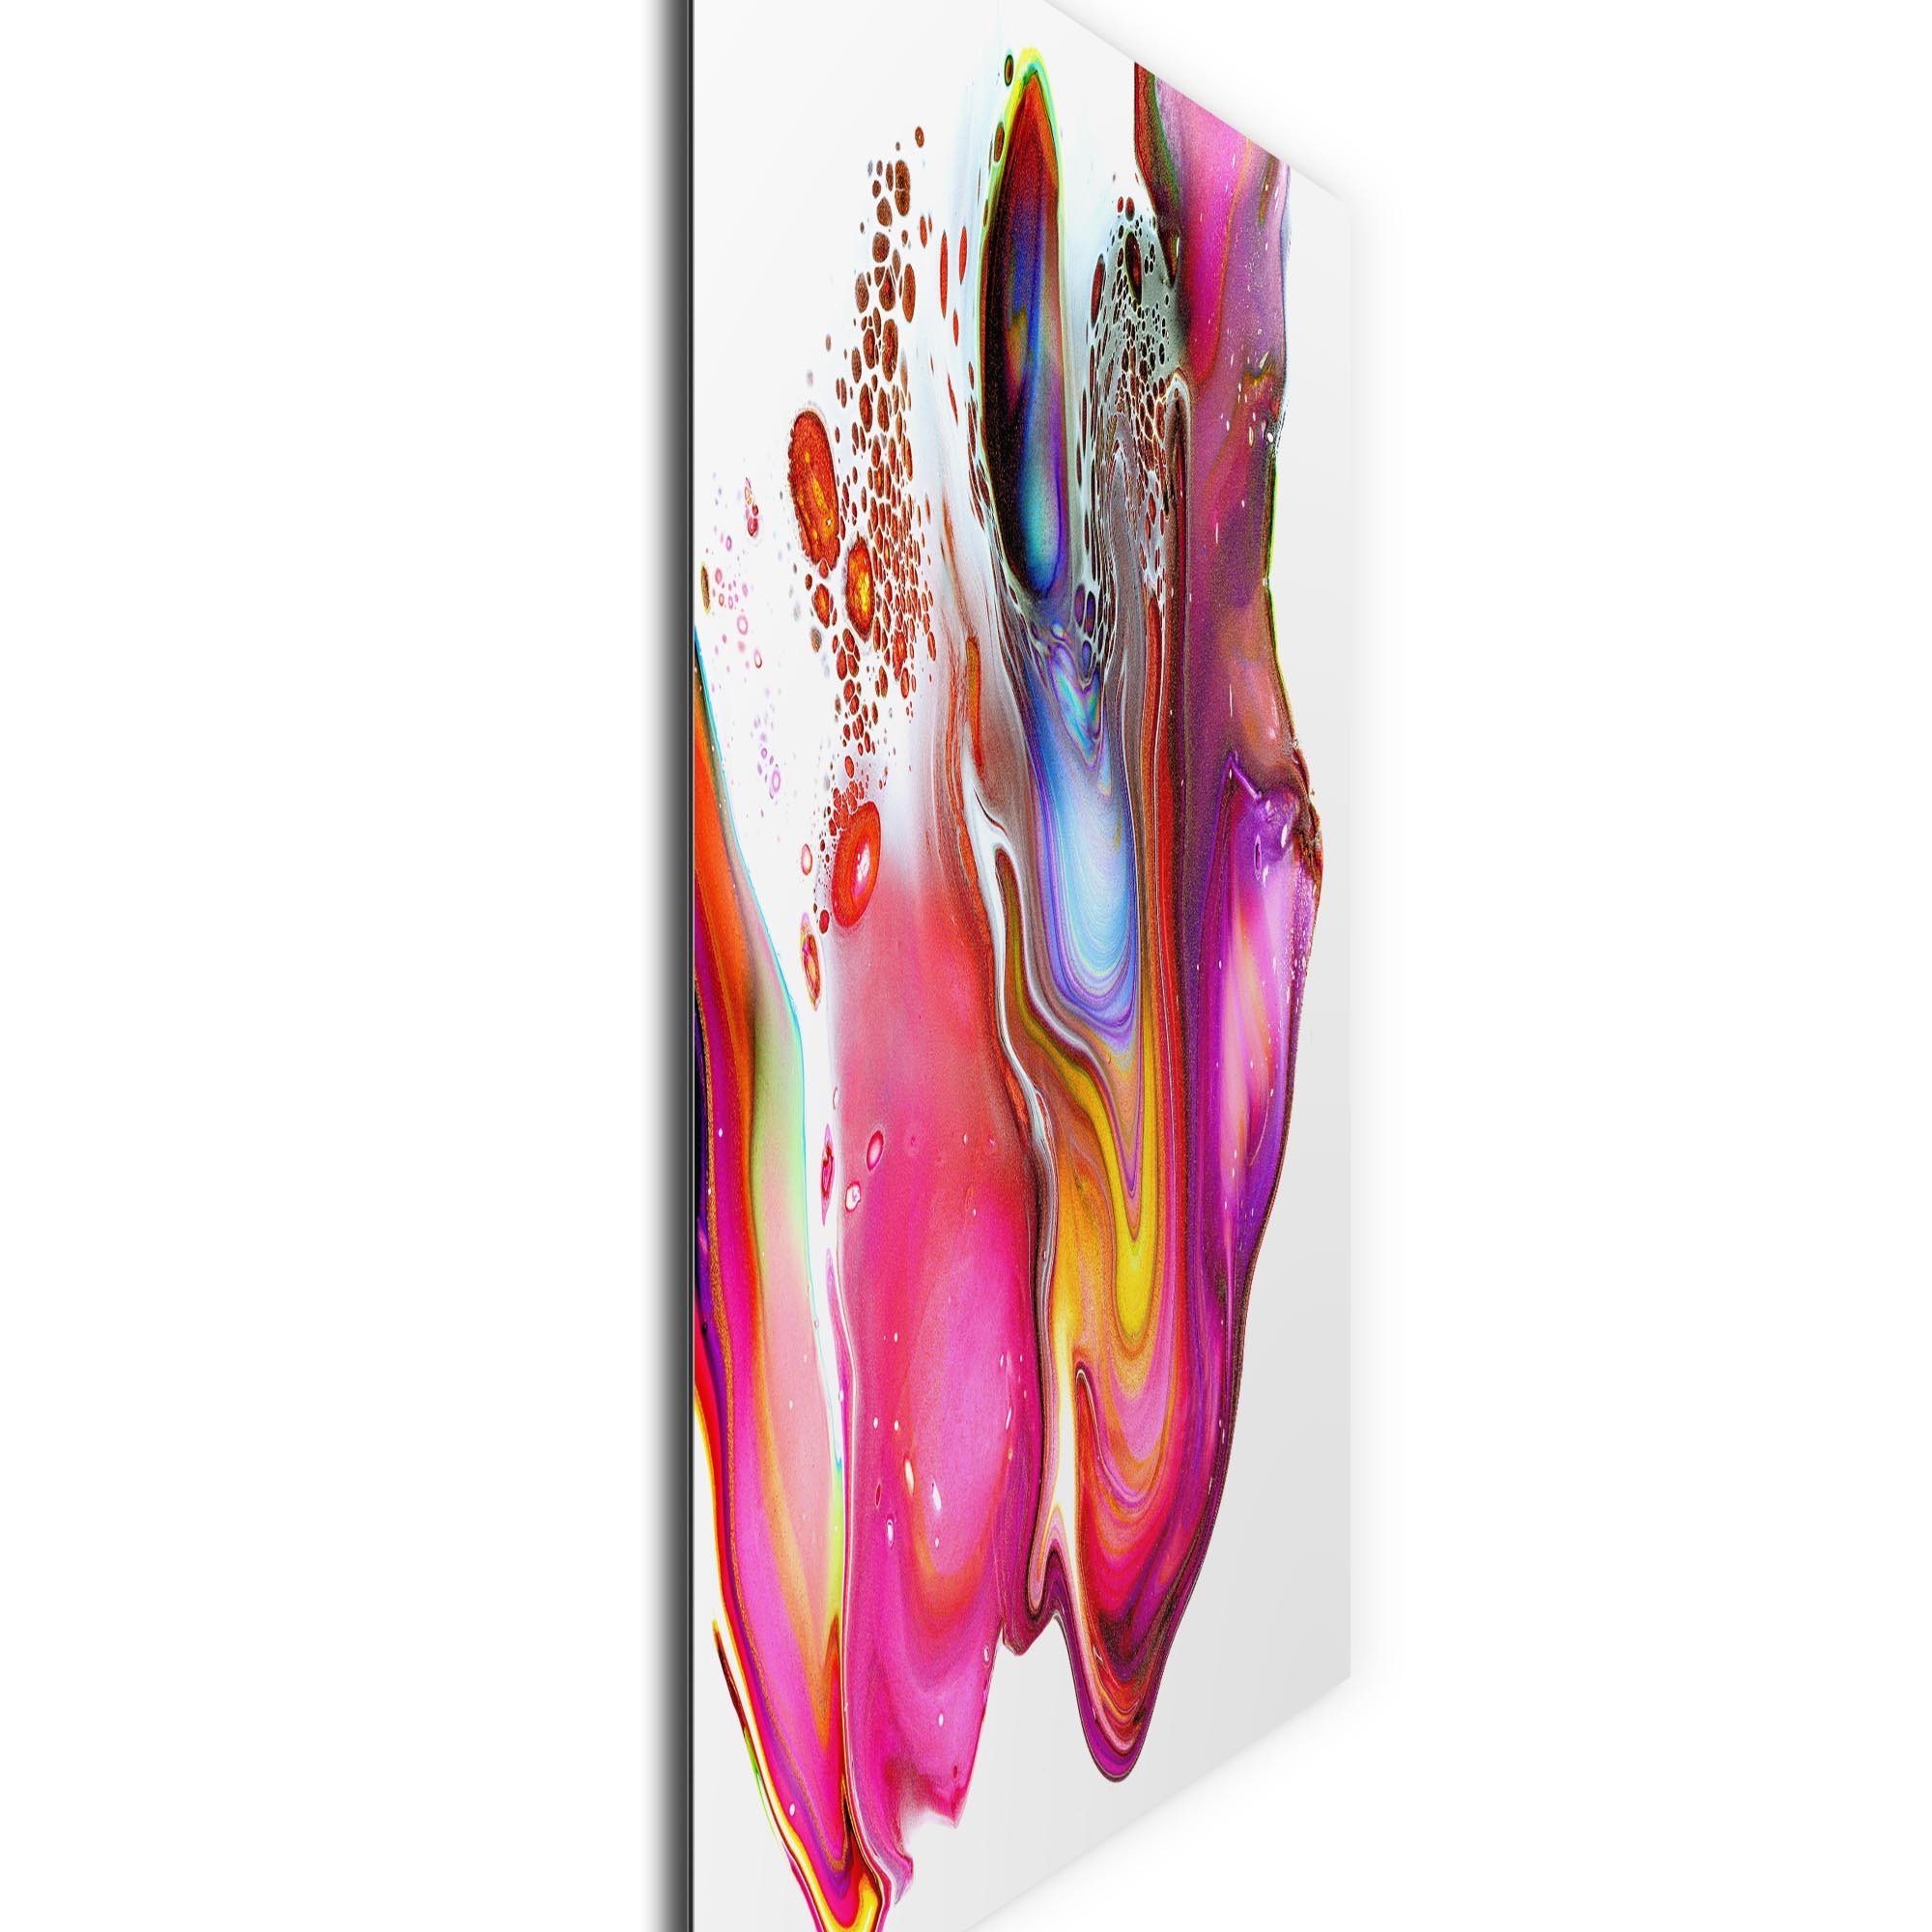 Warped by Elana Reiter - Abstract Wall Art, Modern Home Decor (36in x 36in) - Image 2